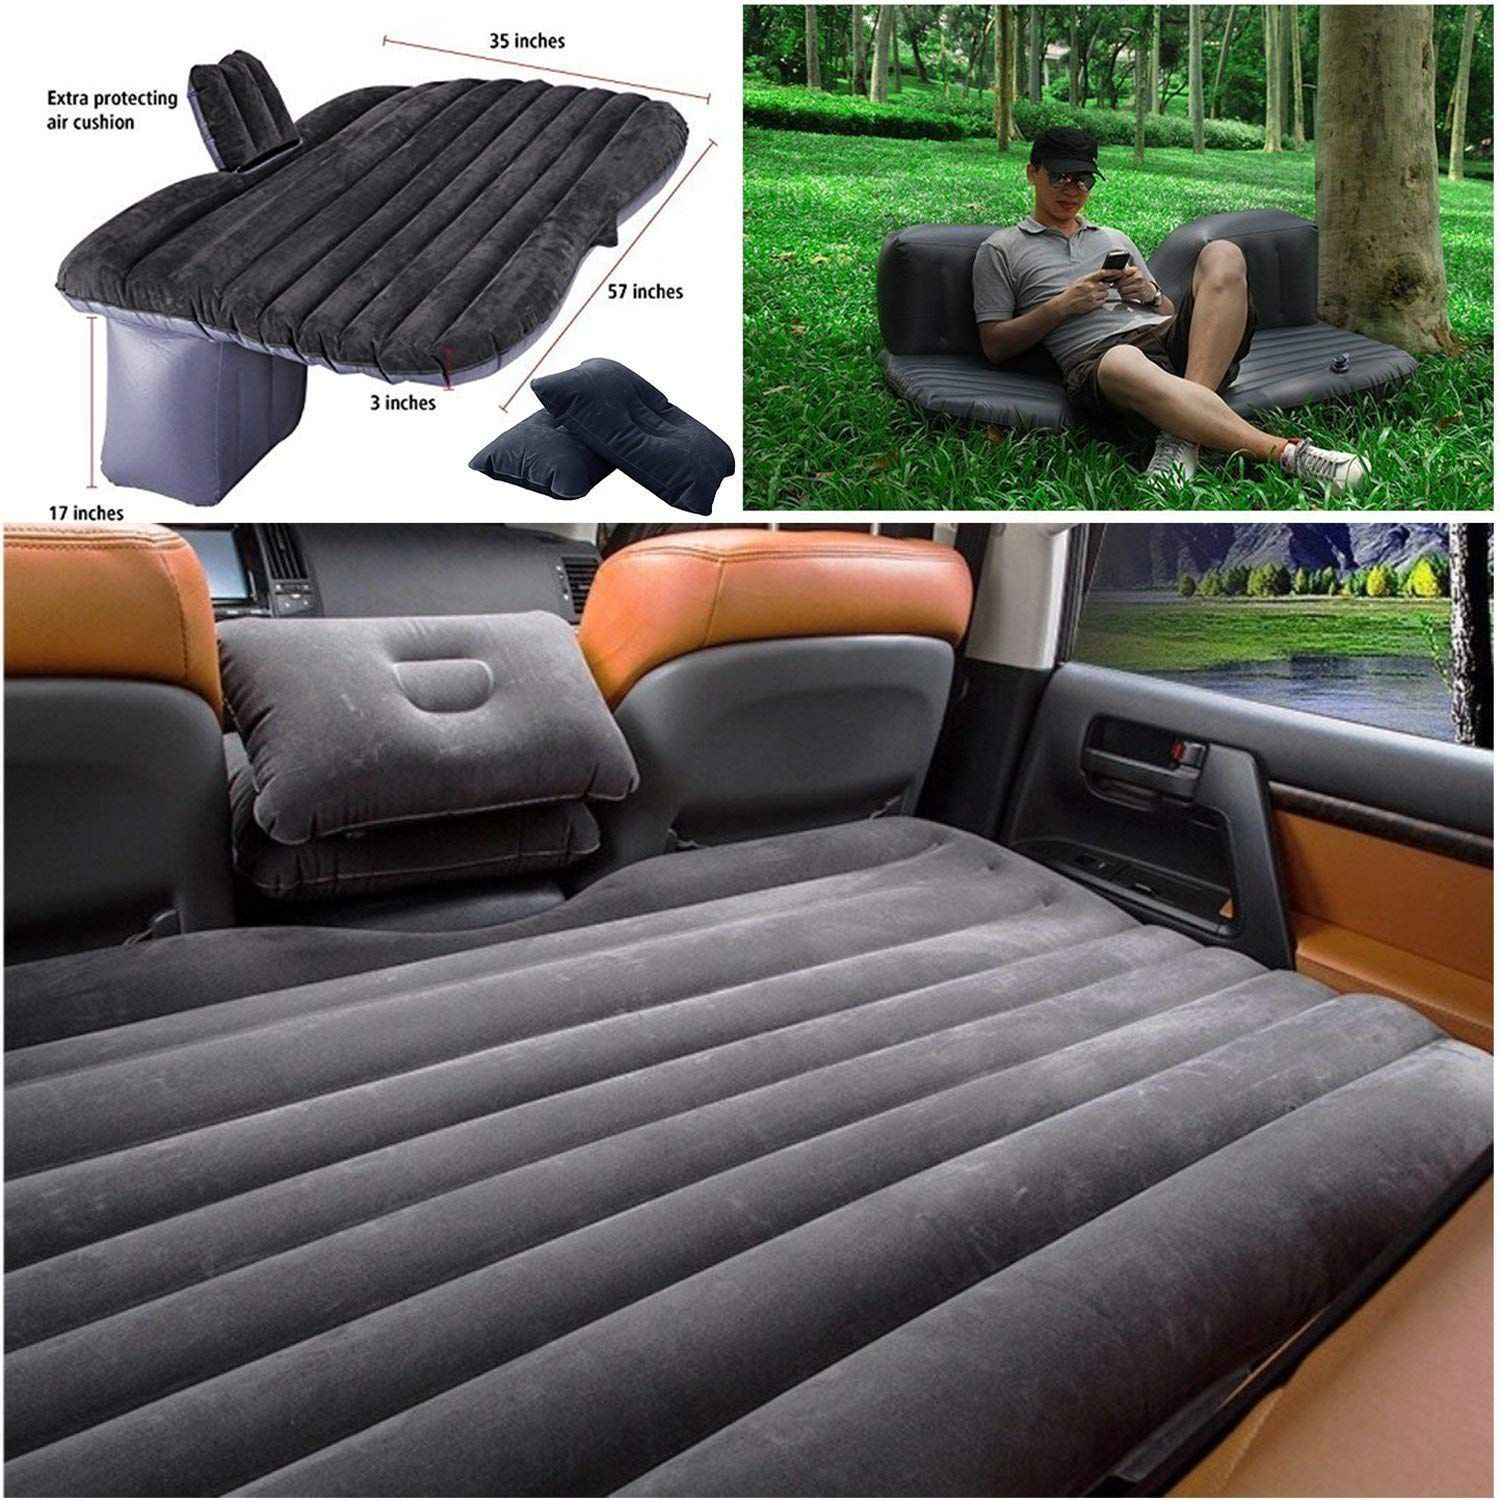 Bk10 Travel Sleeping Back Seat Comfortable Vehicle With Electric